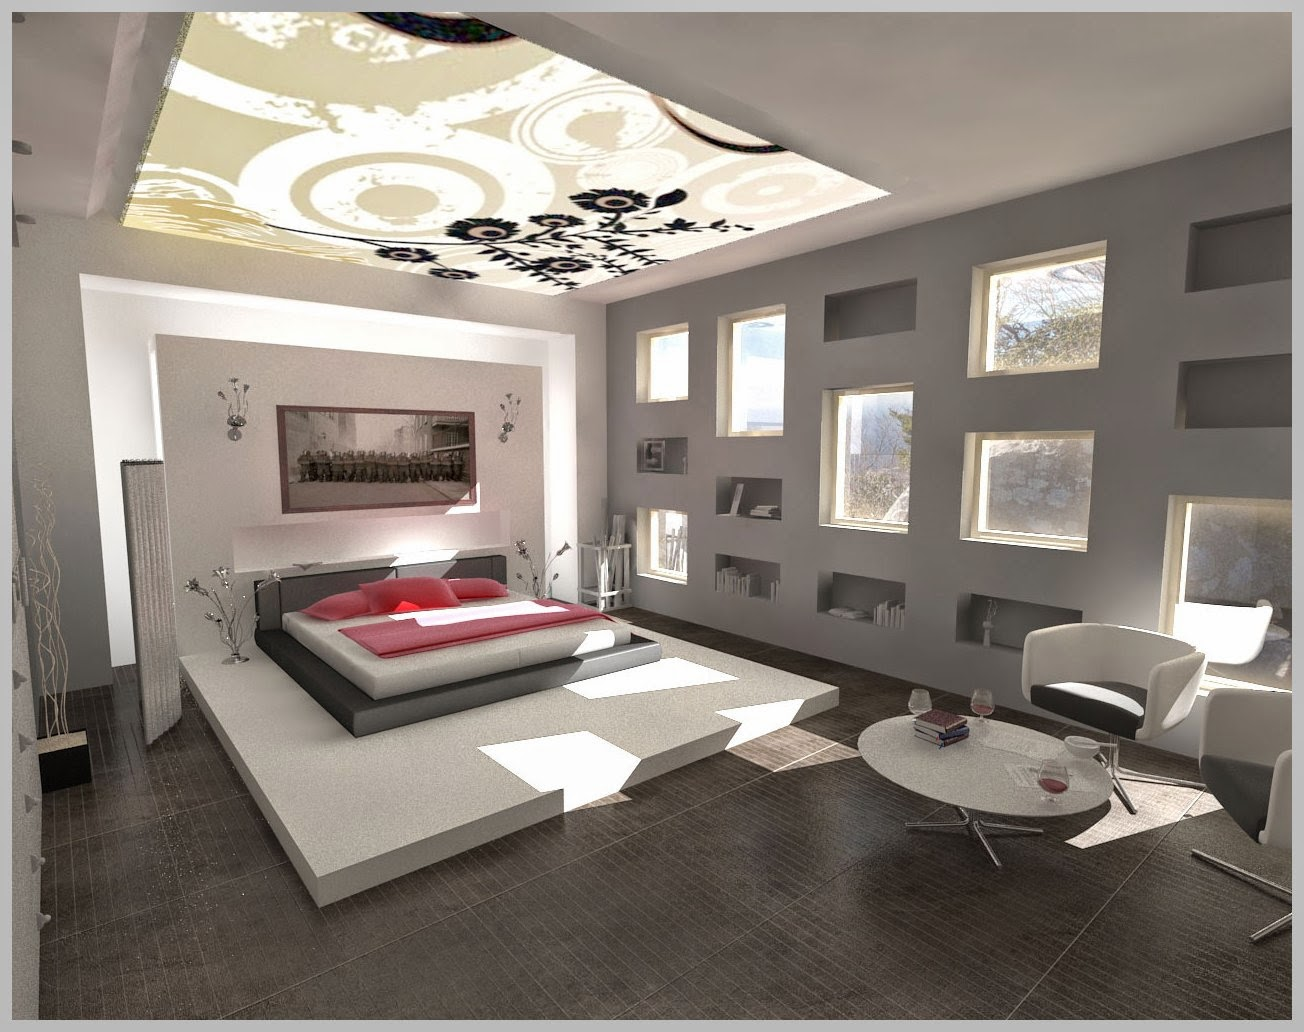 Alimustang home design future aroda va interior designers for Celebrity interior designers